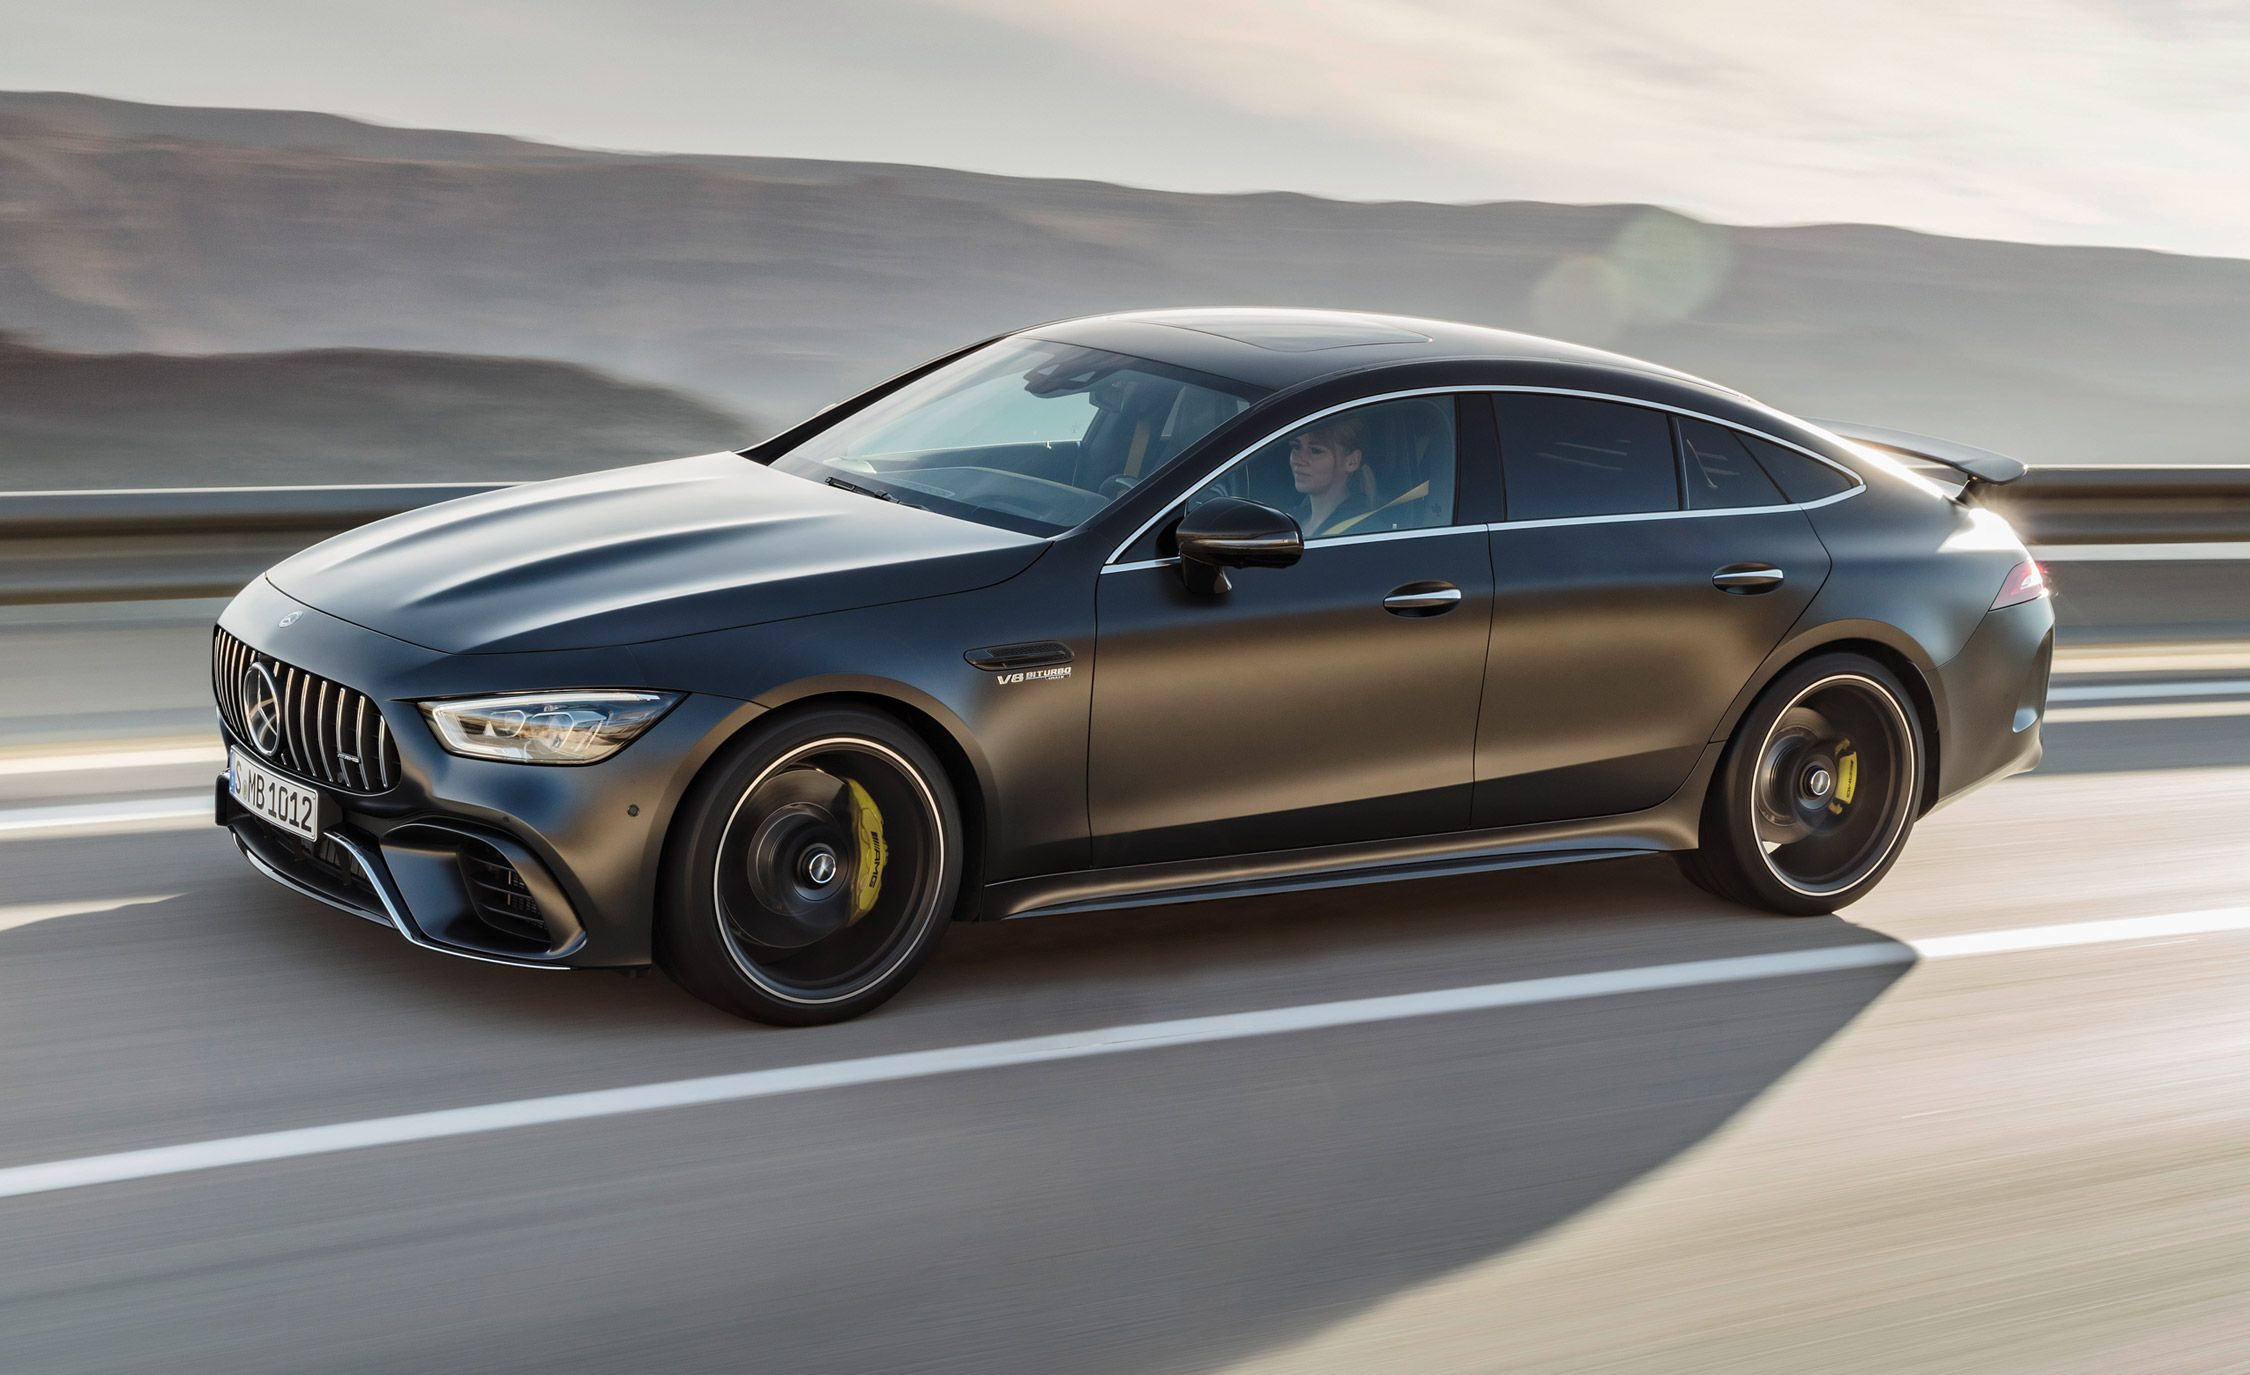 2019 Mercedes AMG GT 4 Door Coupe: A Pure Blooded Sports Sedan